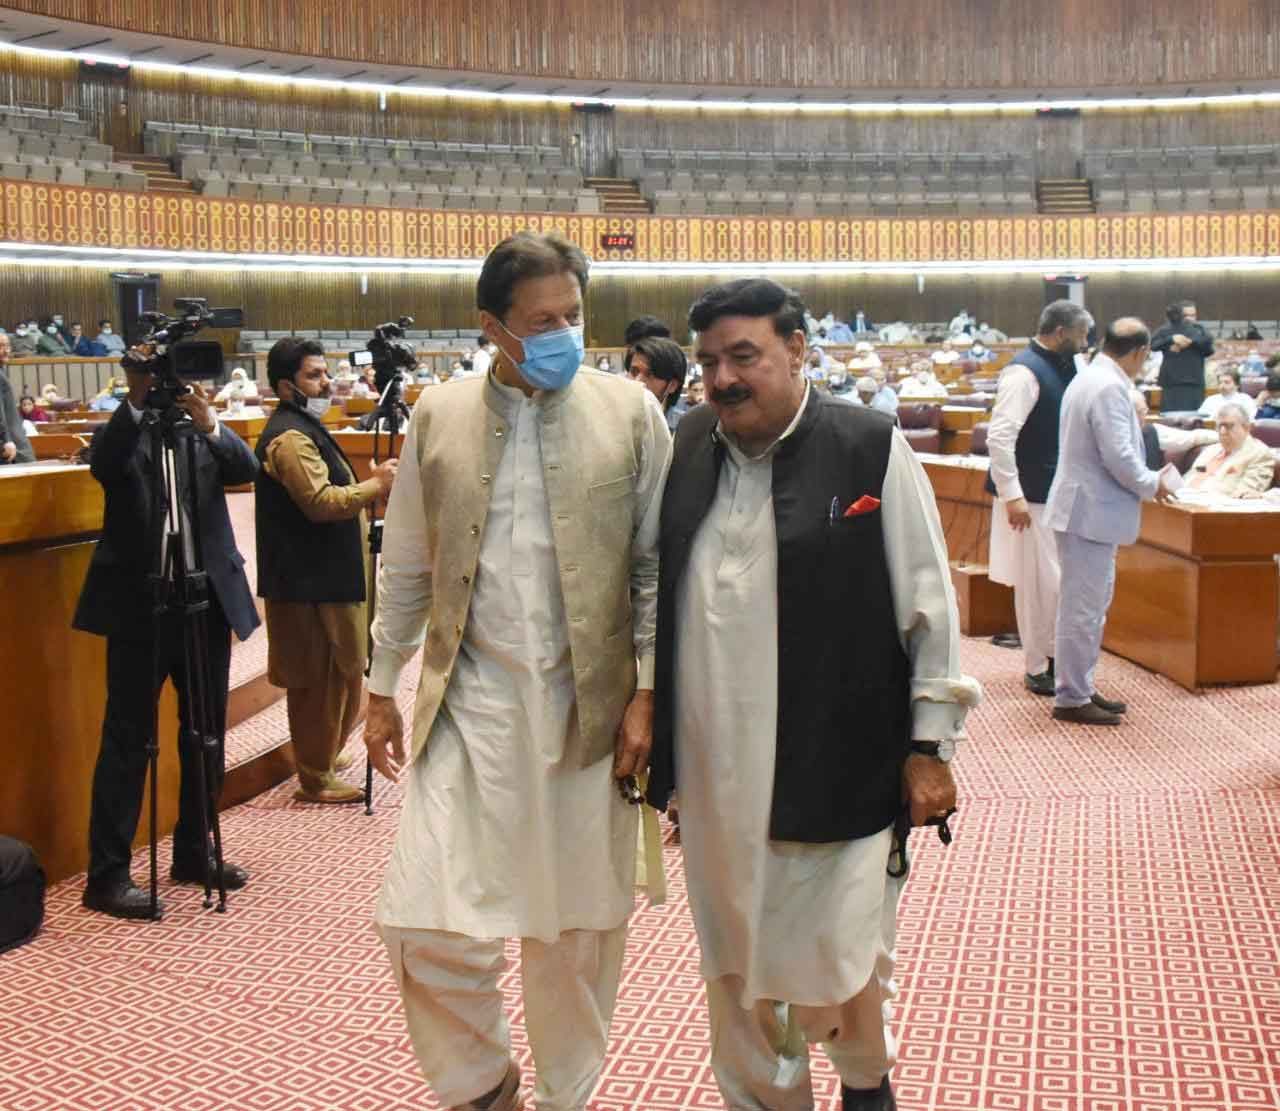 Prime Minister Imran Khan and Minister for Interior Sheikh Rasheed Ahmed leaving the National Assembly after the session was adjourned.